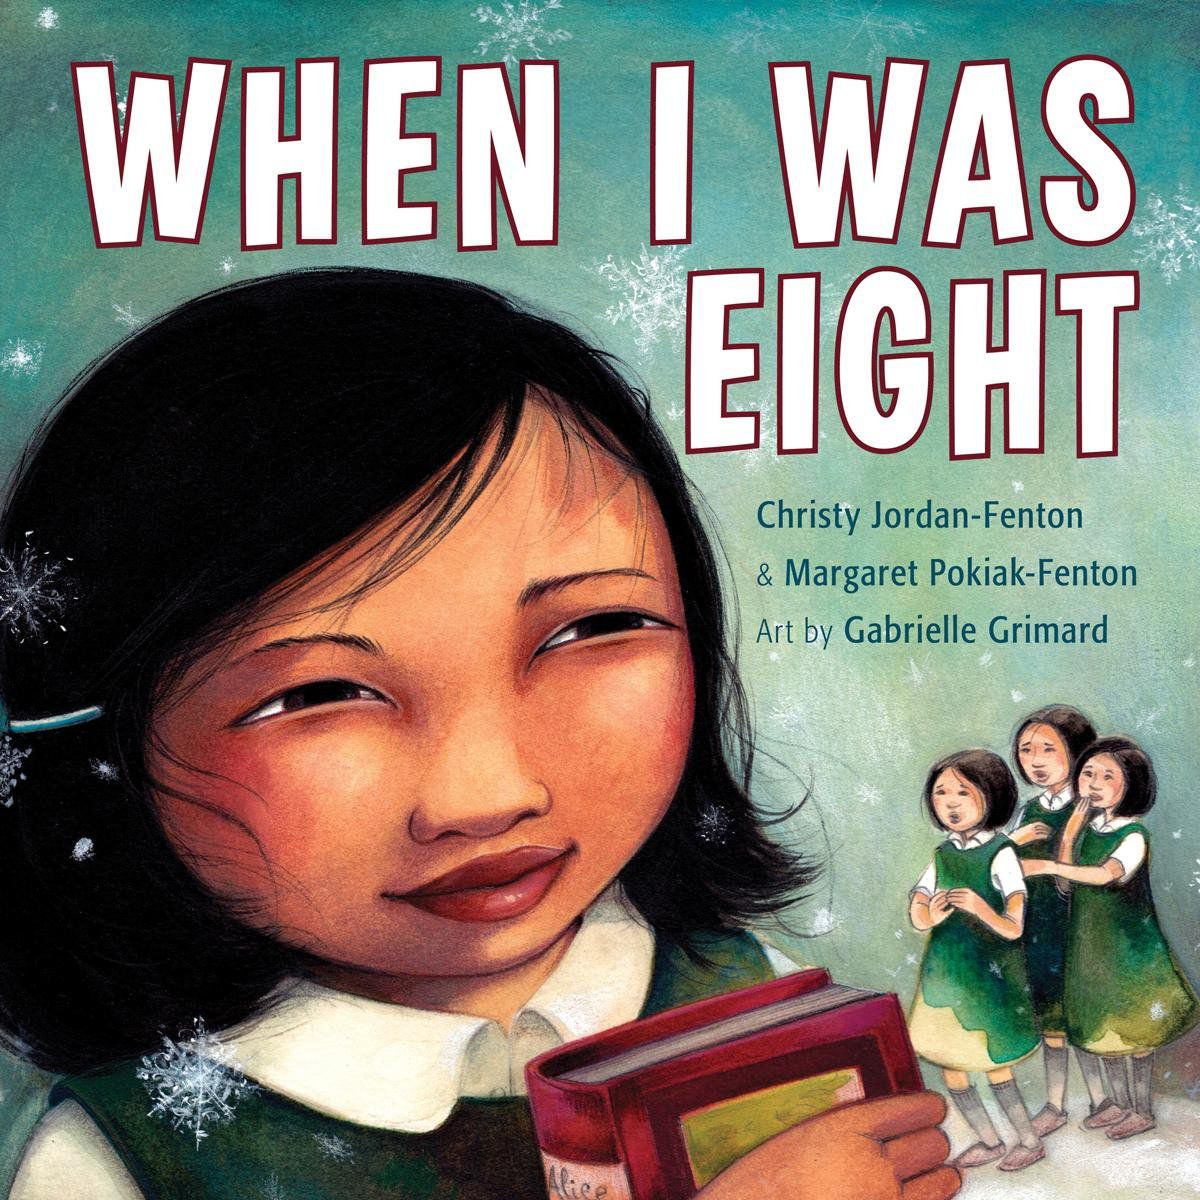 When I Was Eight by Christy Jordan-Fenton cover